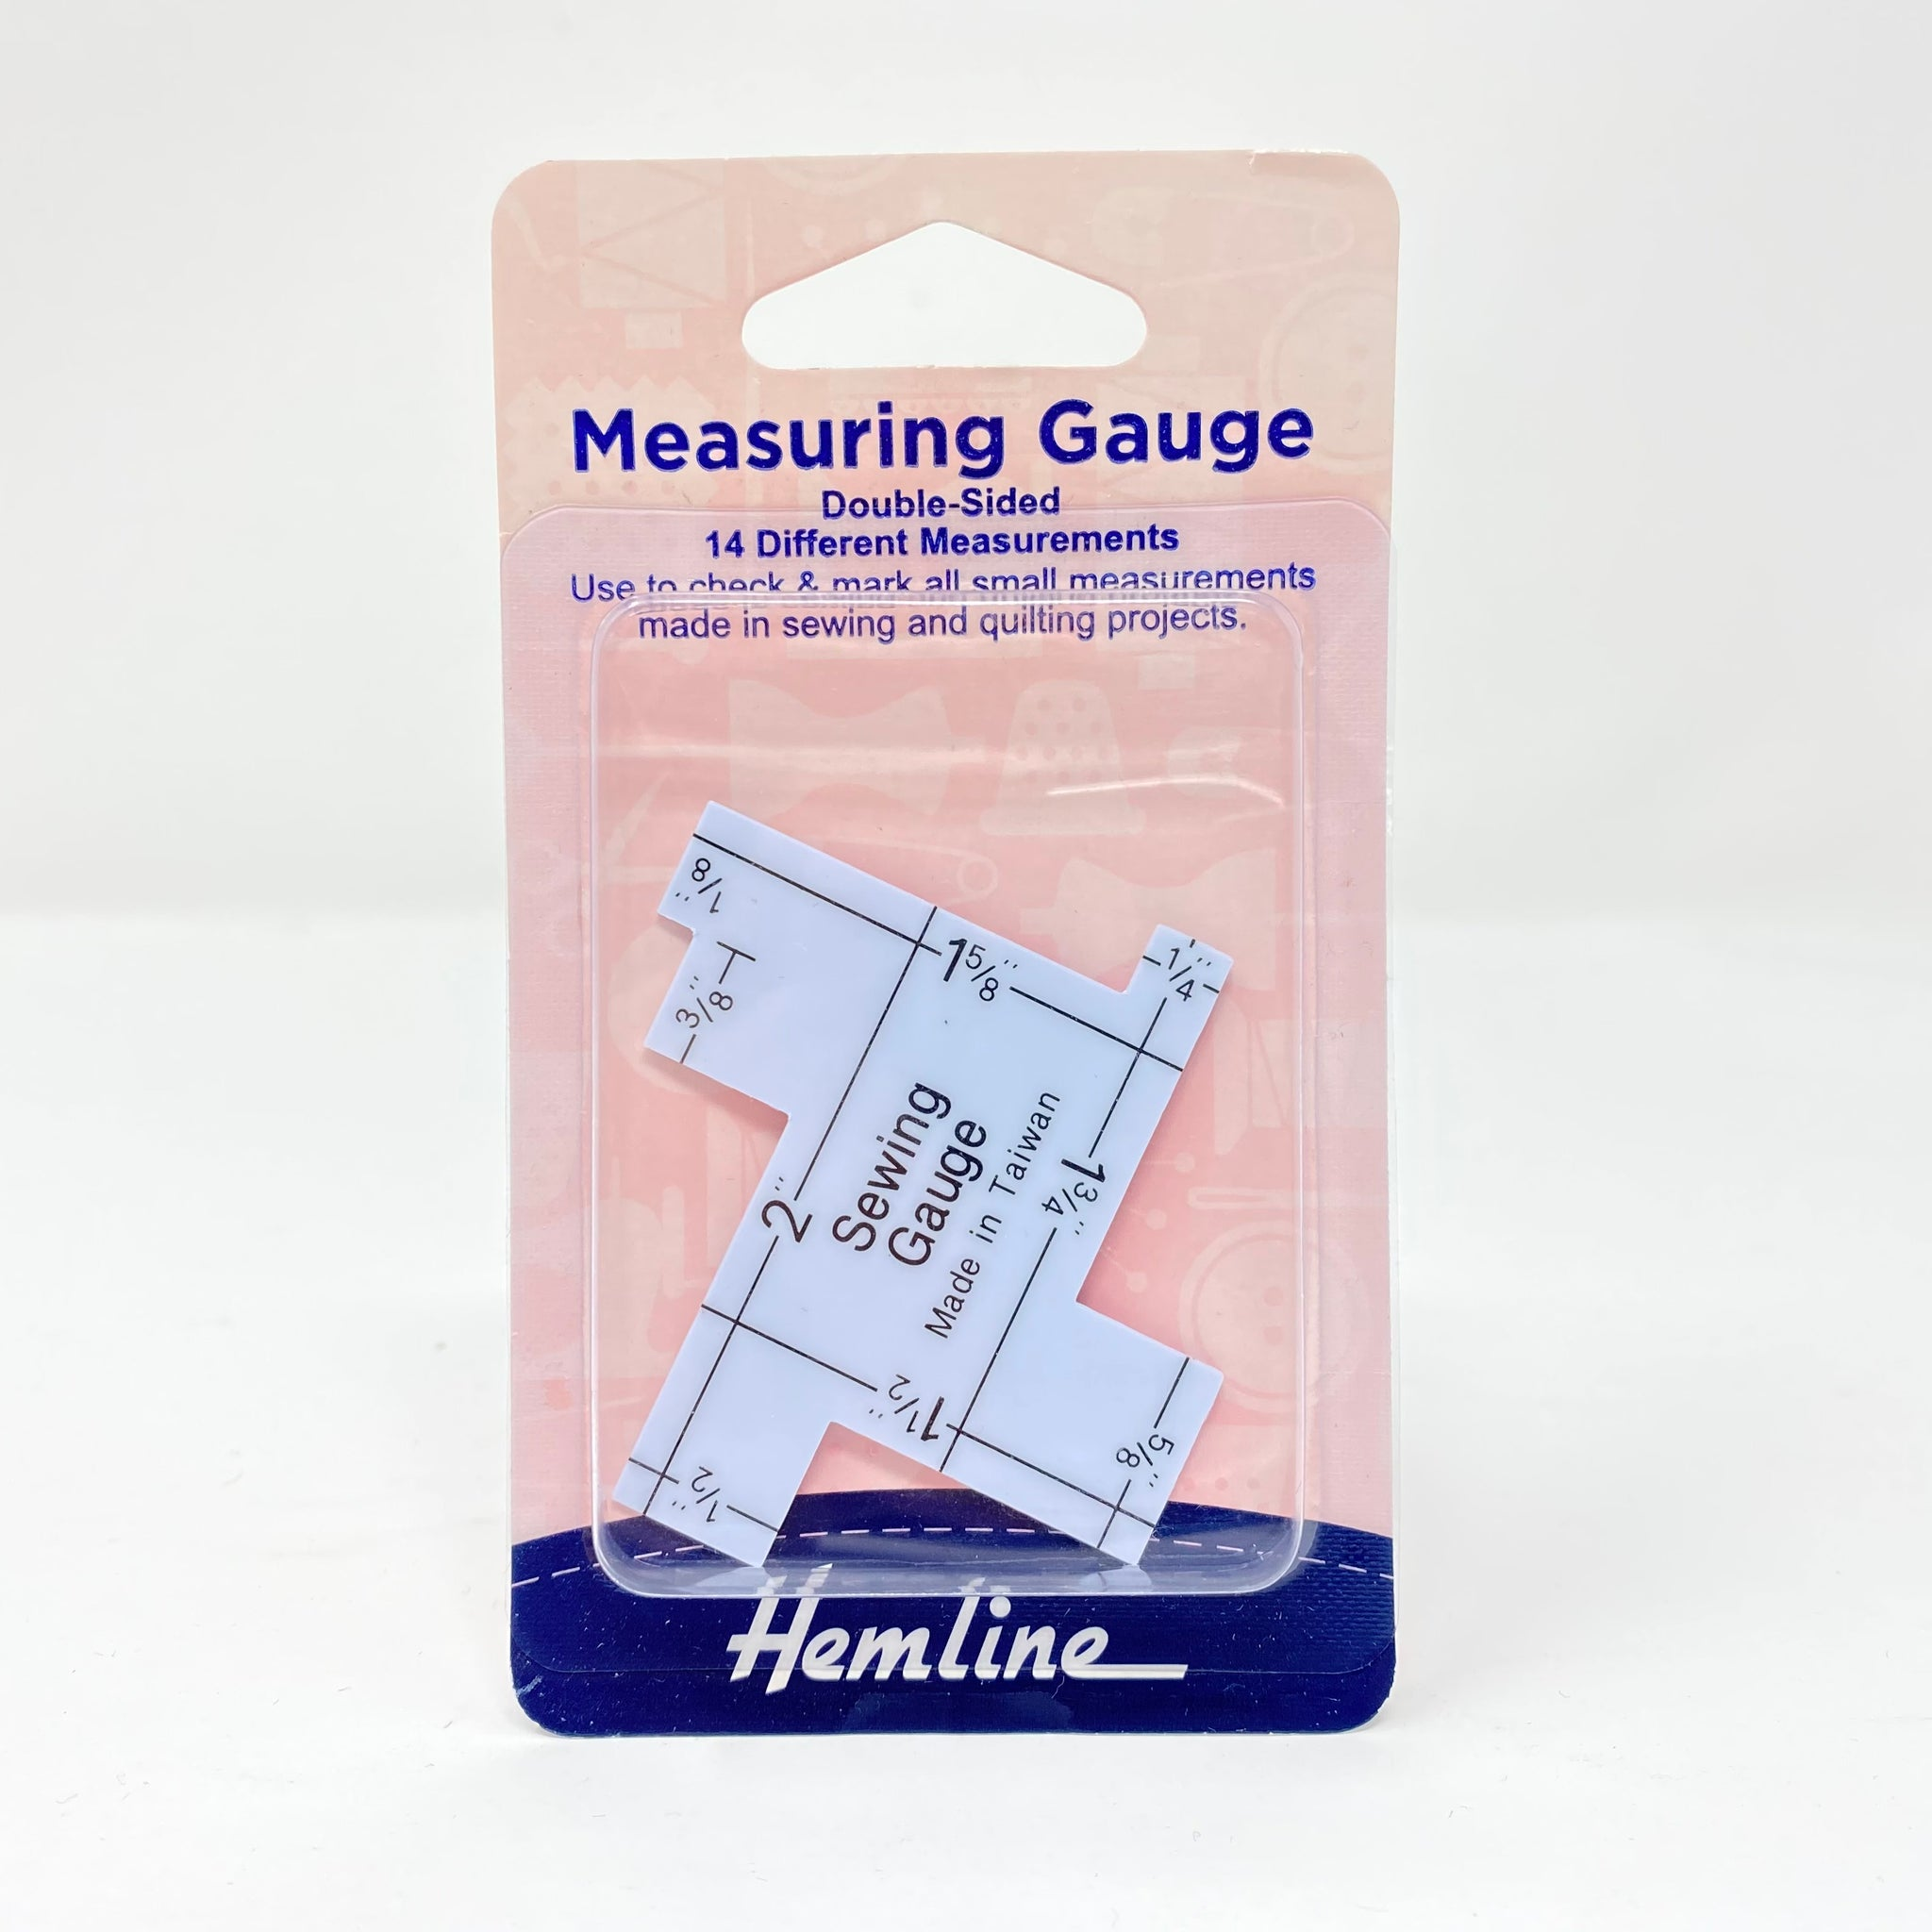 Hemline - Measuring Gauge Double Sided